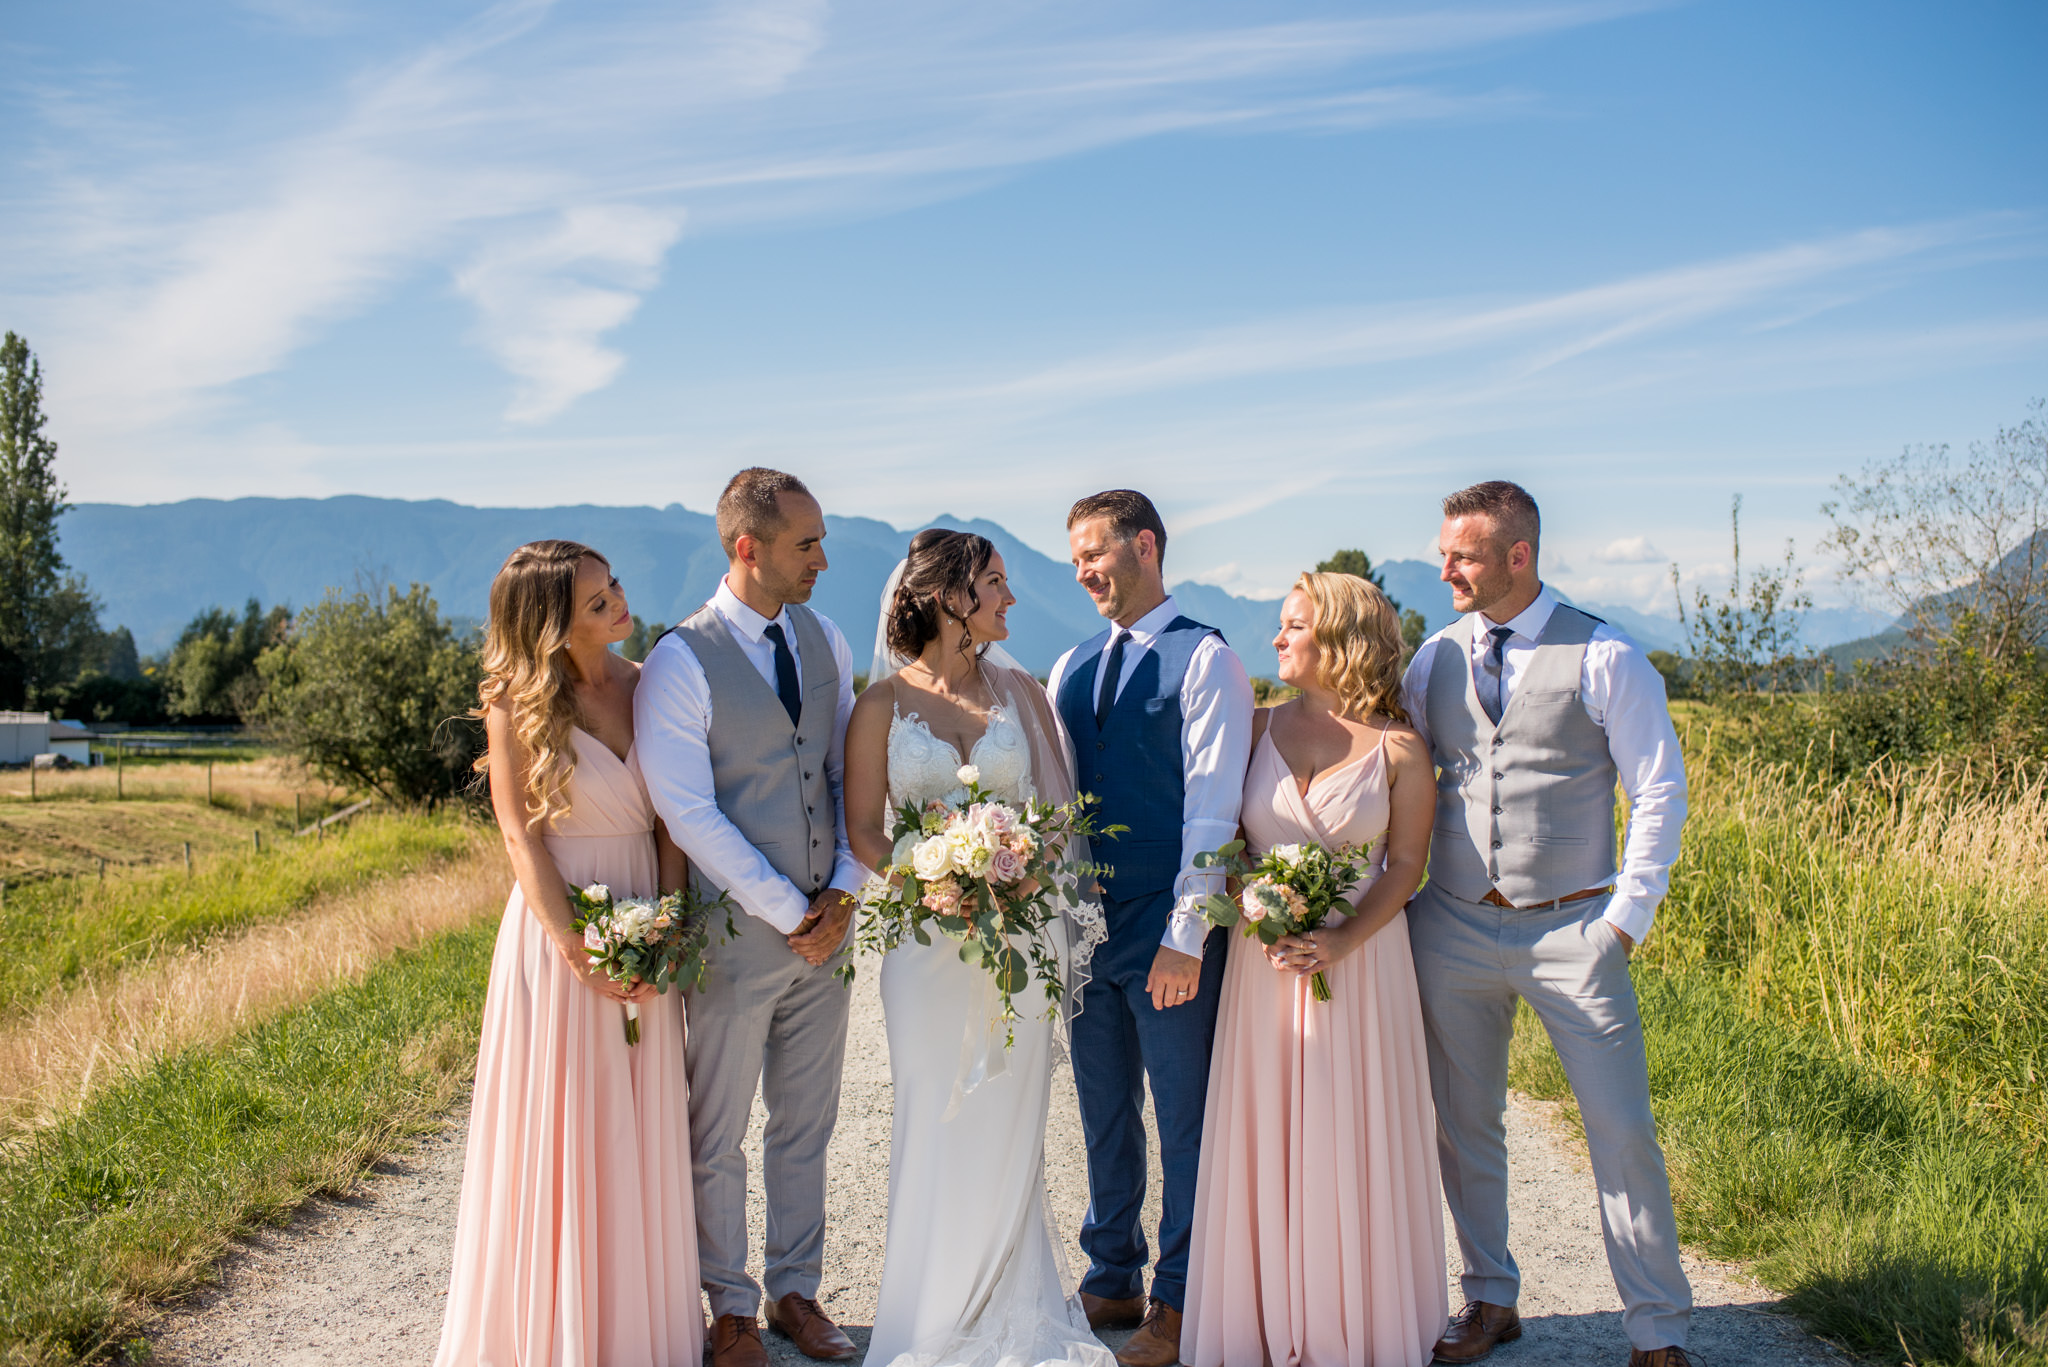 Wedding Party in Maple Ridge BC, Canada